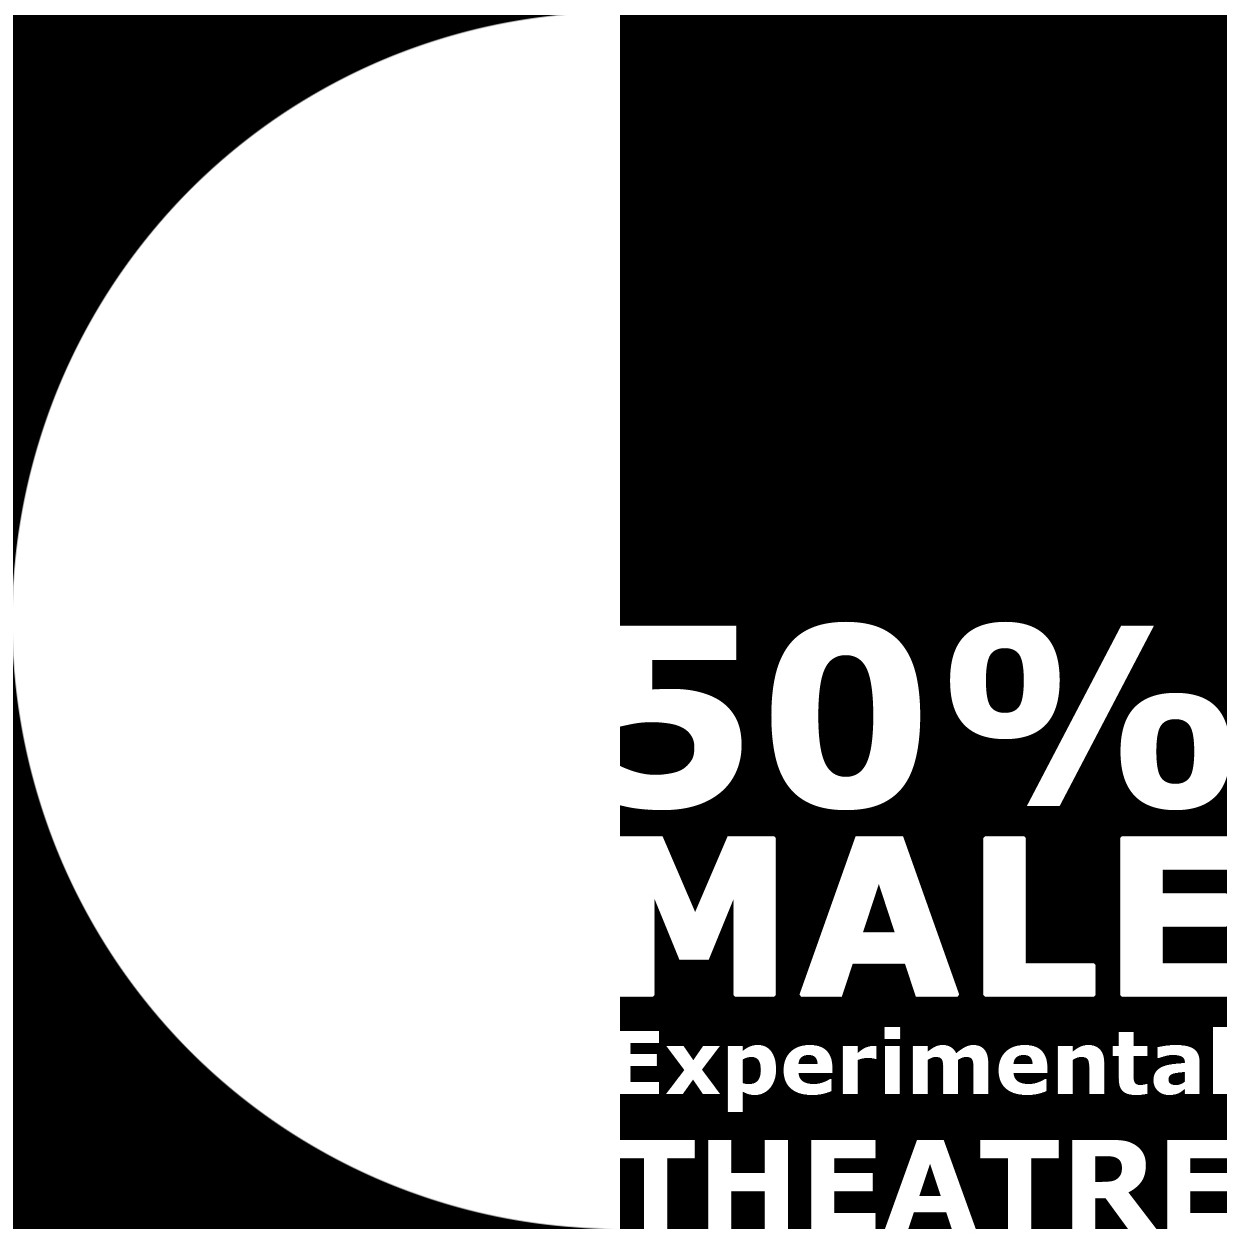 50% Male Experimental Theatre